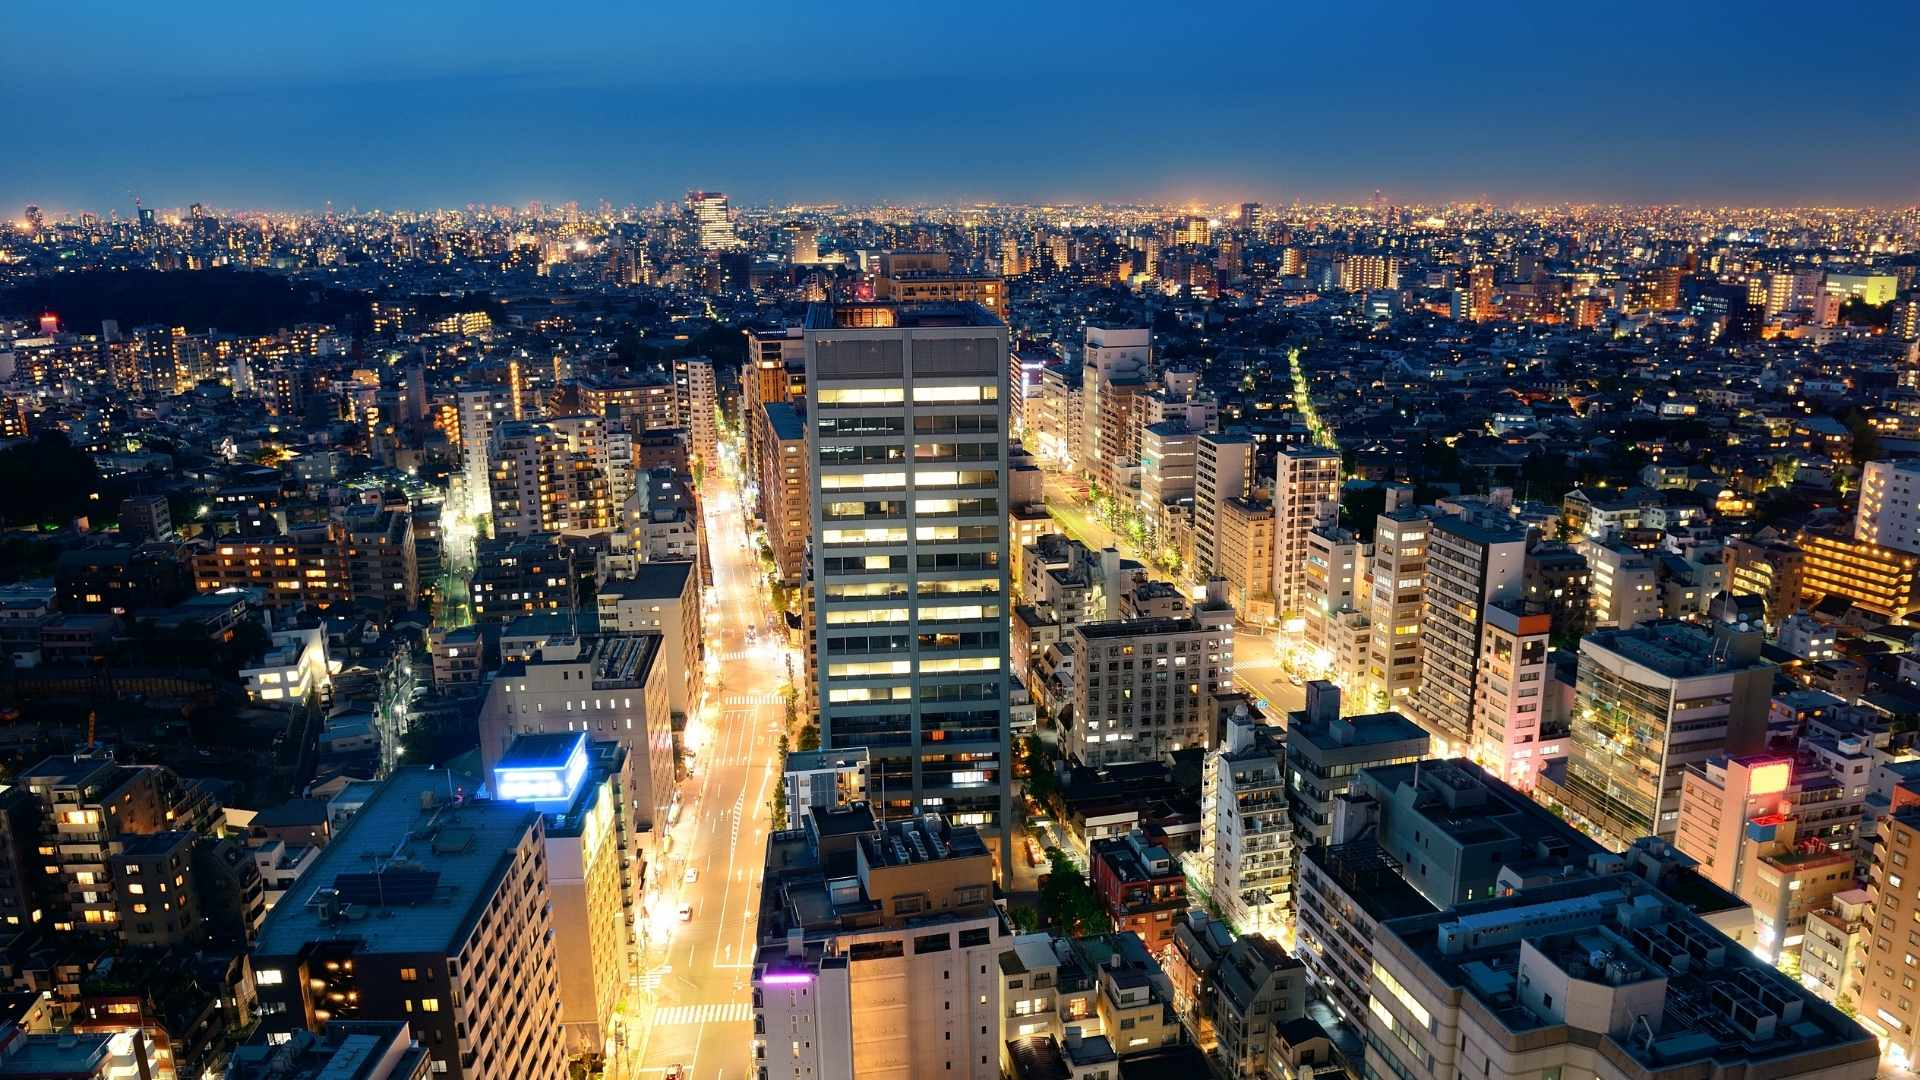 Where to stay in Tokyo for nightlife Hostels & Hotels